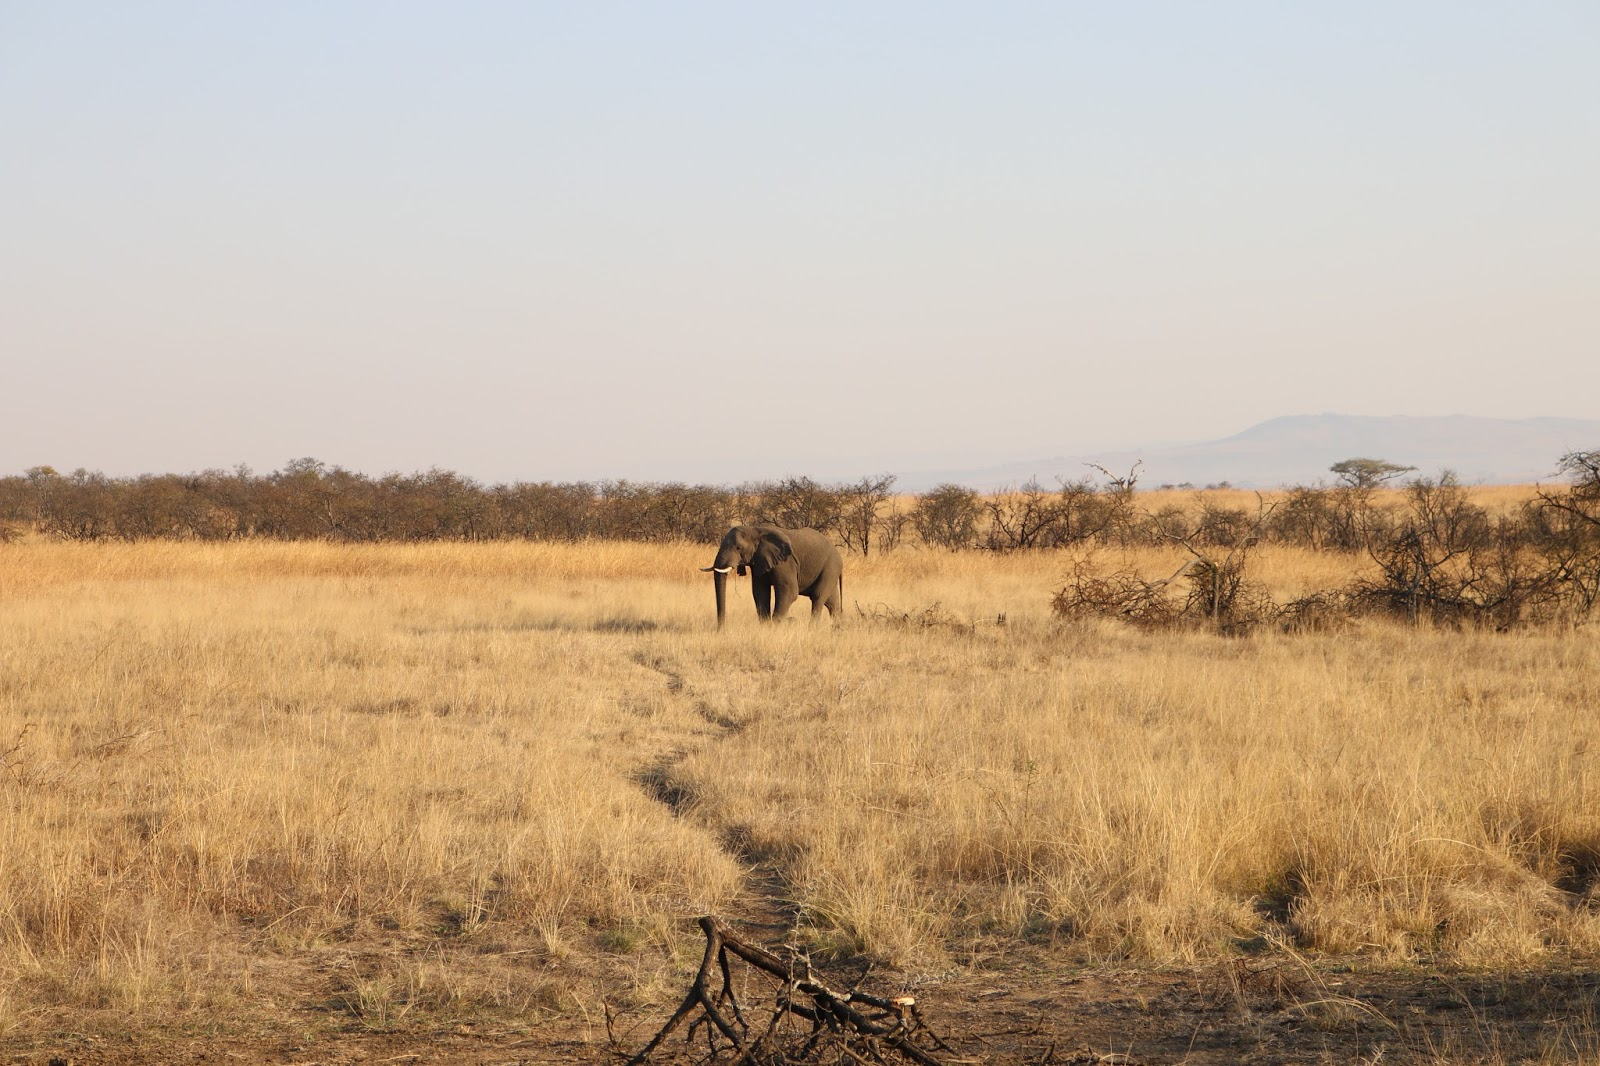 Elephant in the Nambiti Game Reserve, South Africa